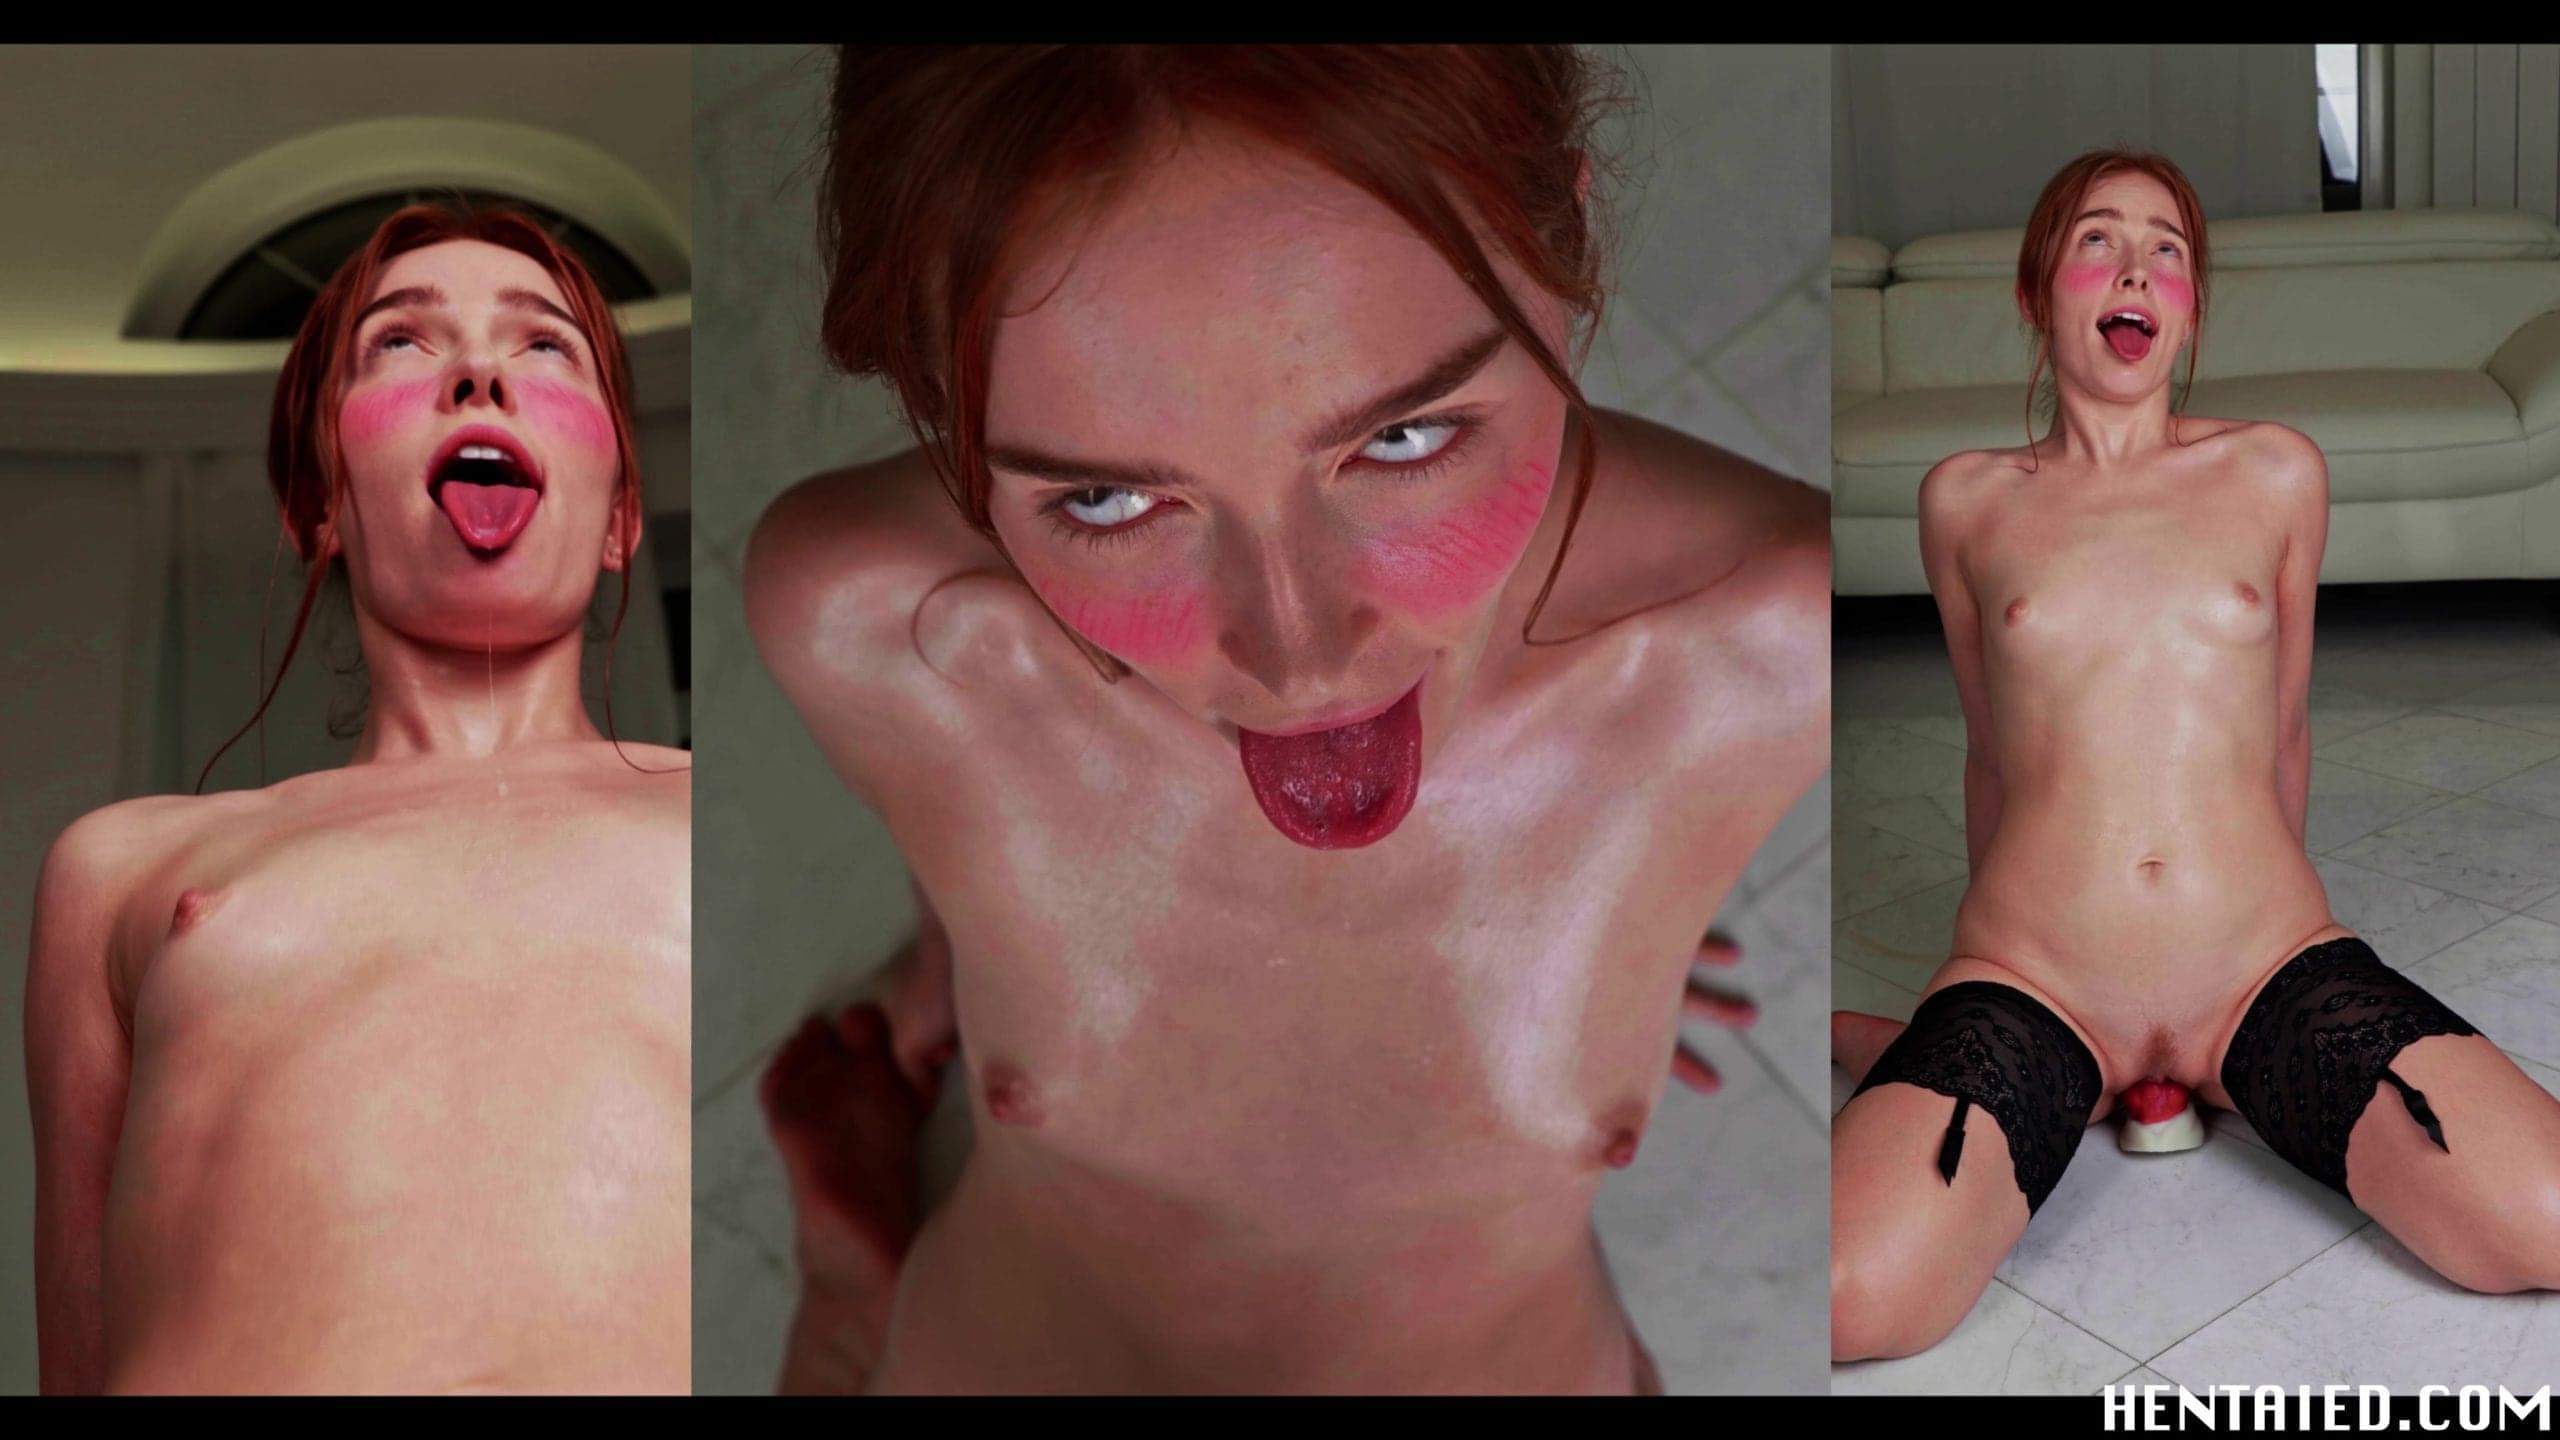 Ahegao faces of naked Jia Lissa